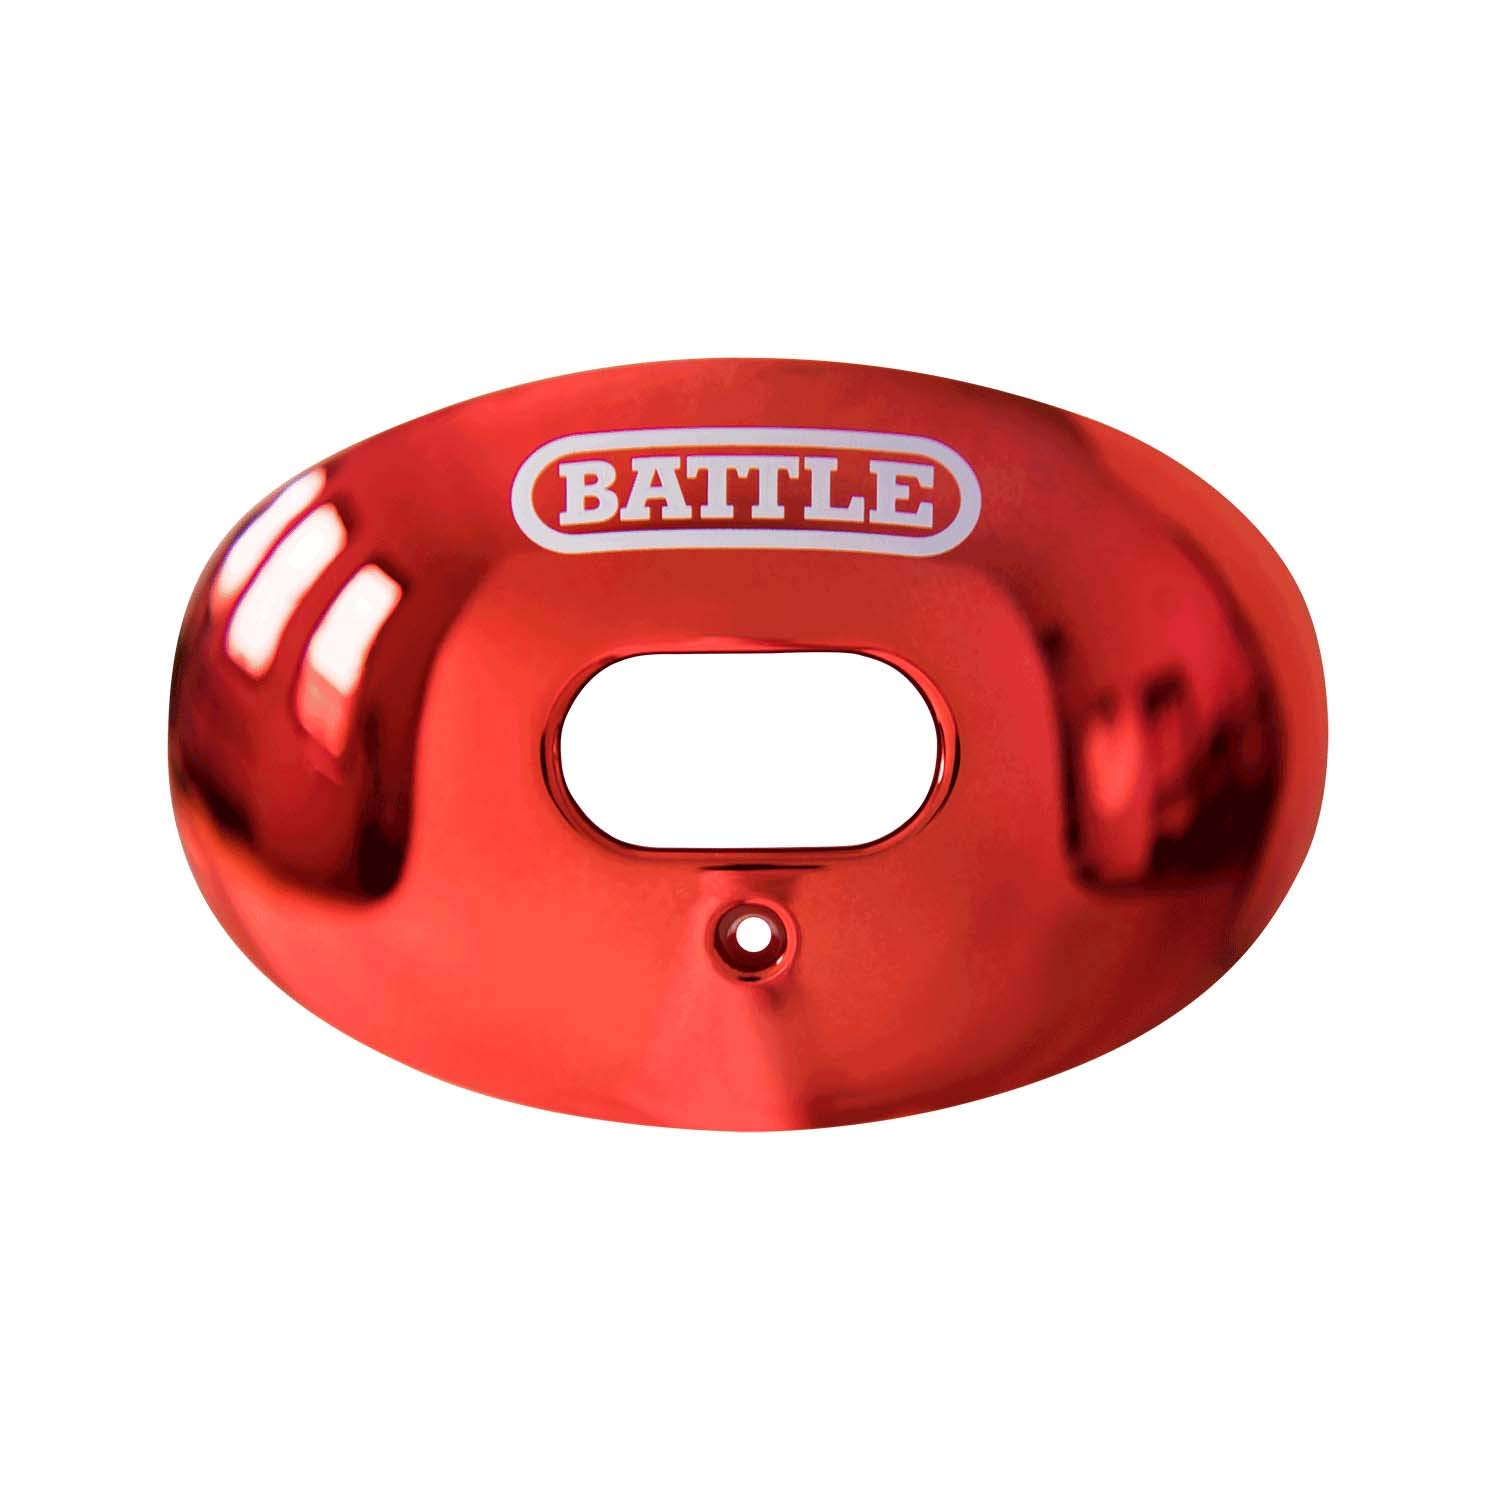 Battle Oxygen Lip Protector Mouthguard (Red Chrome, One Size)